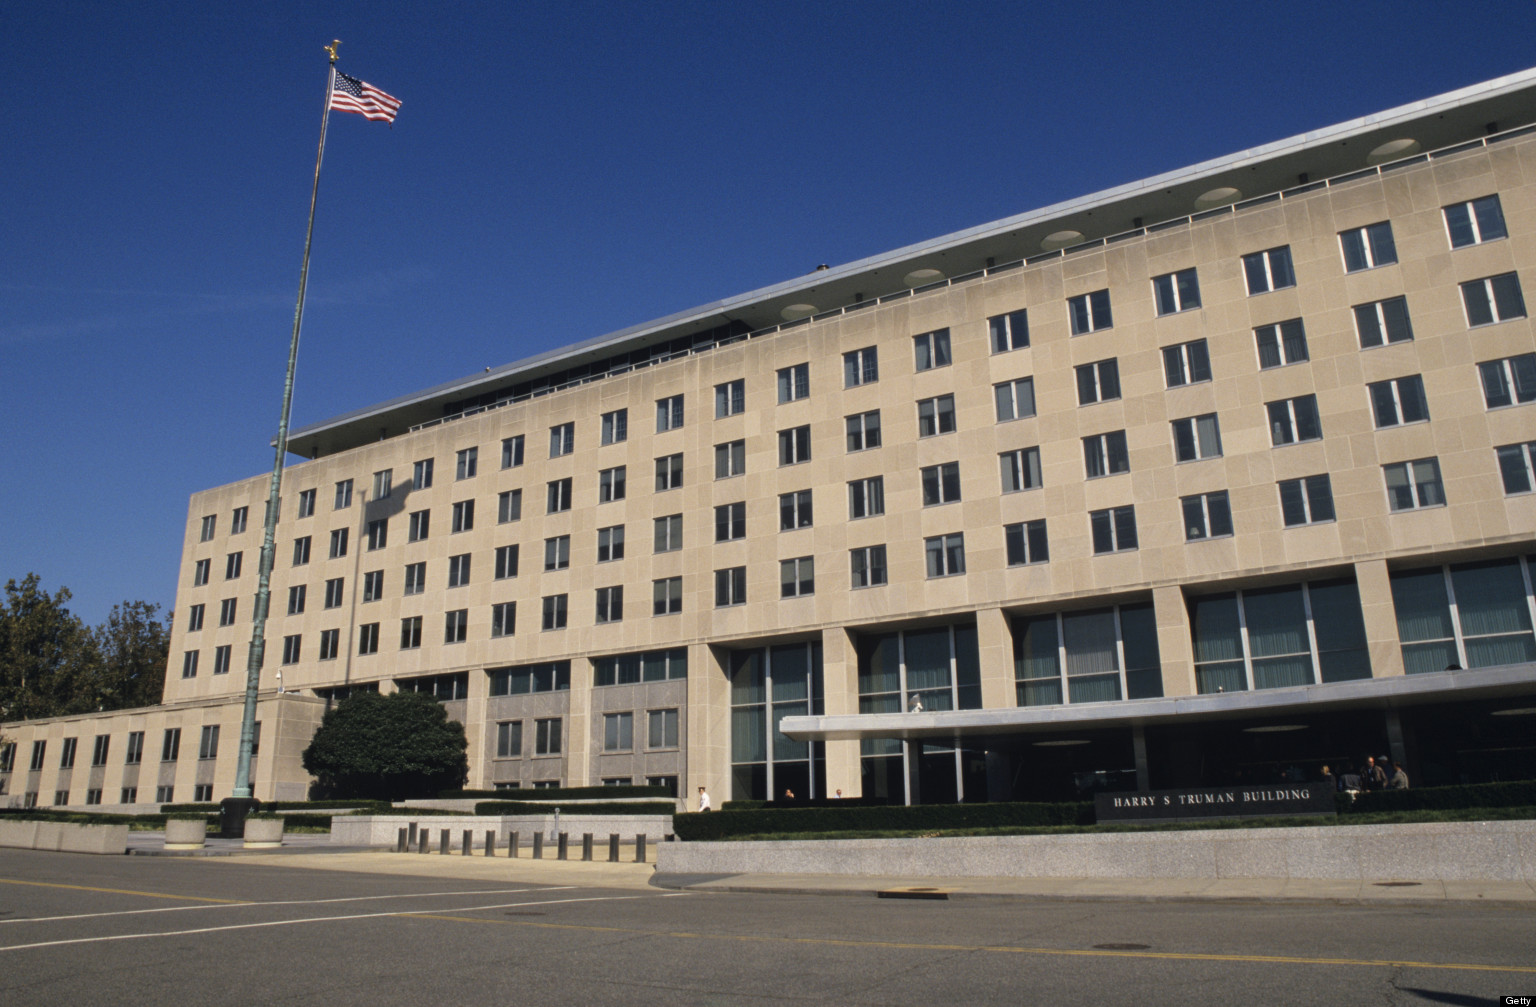 state department building washington dept foreign cabinet affairs agencies cyber offices truman issues which harry hackers newest target usa shortcomings